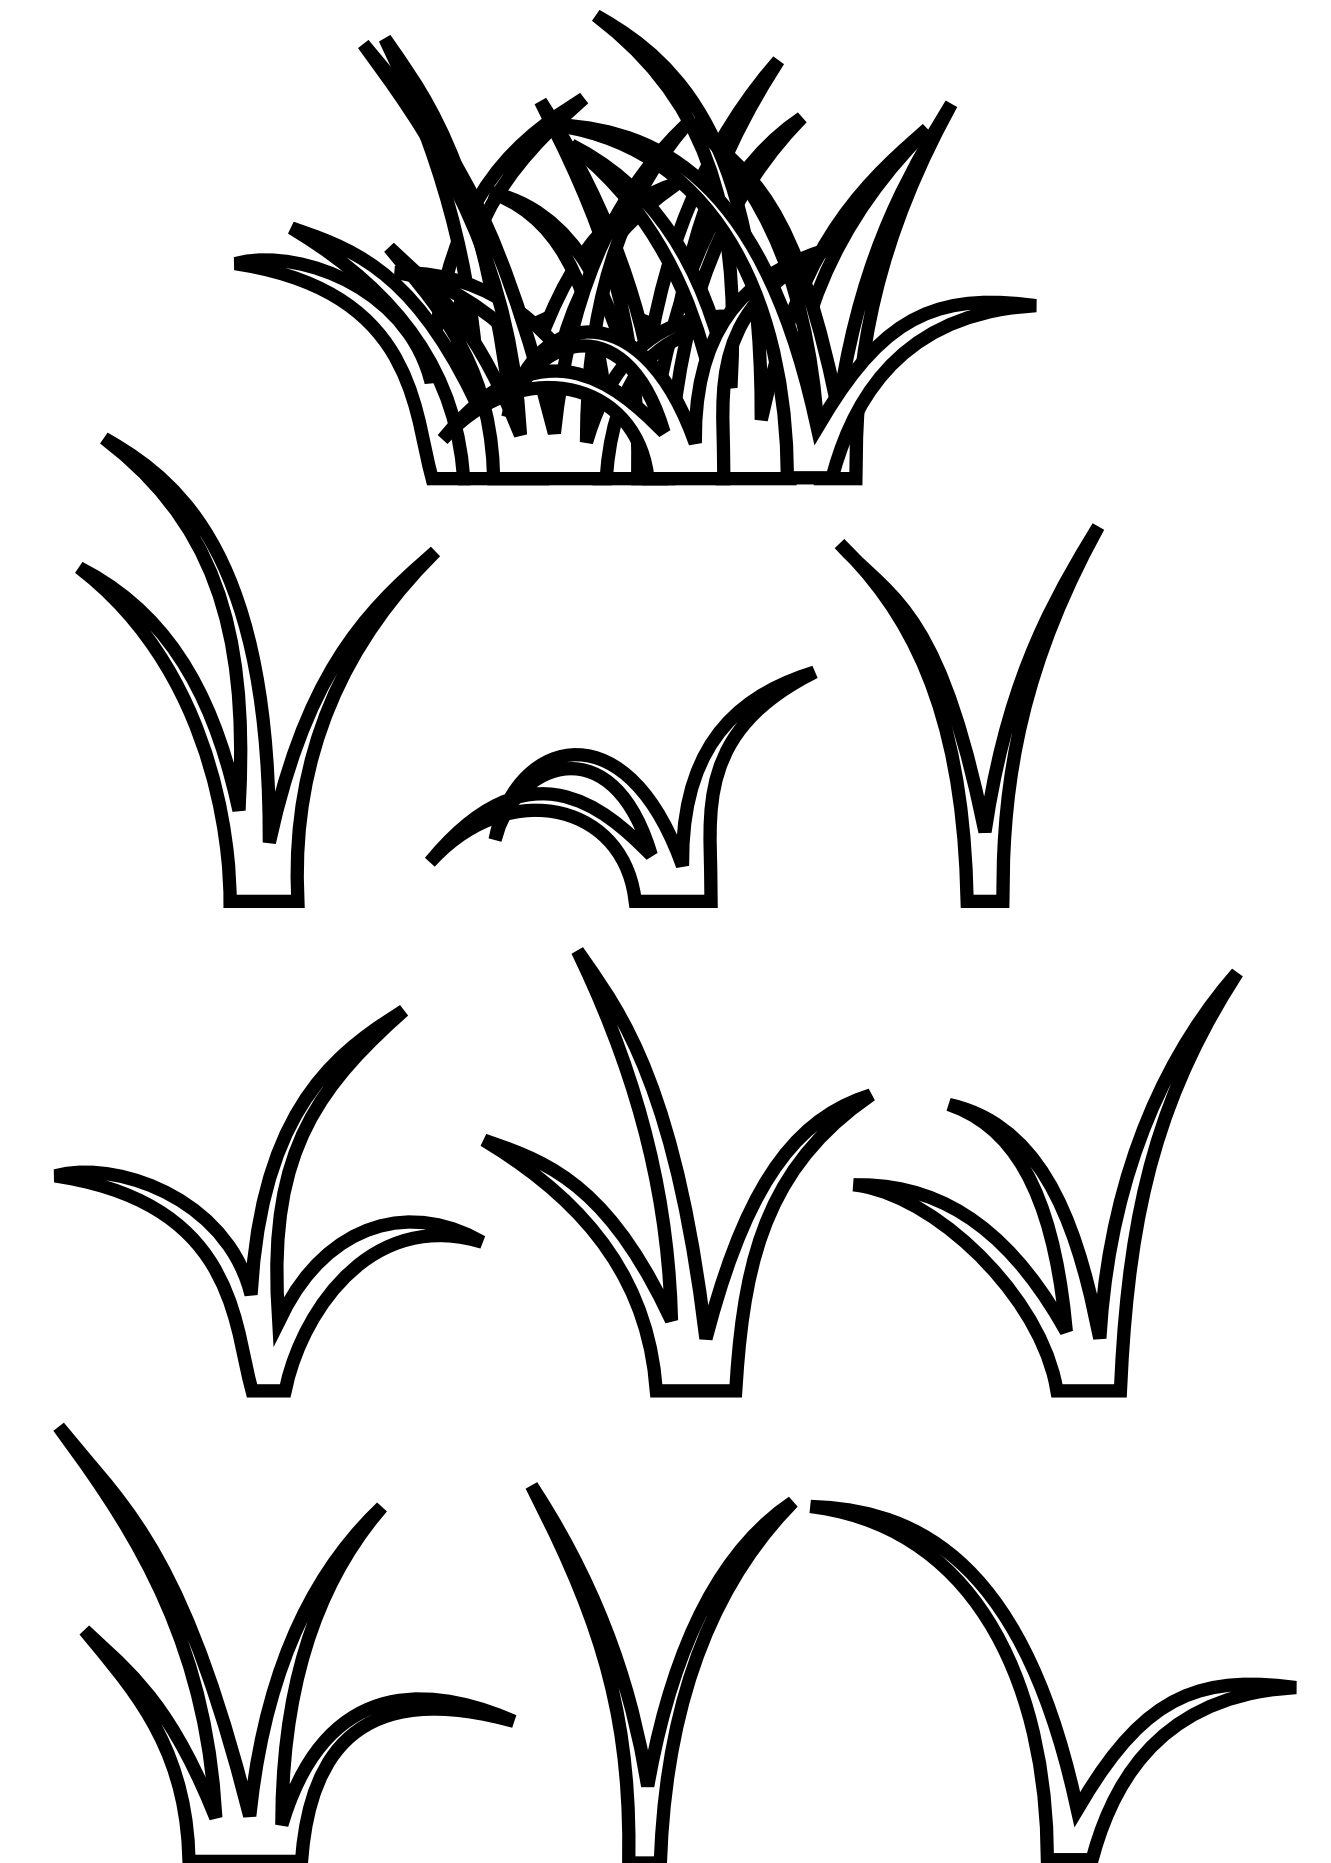 clip art black and white Grass line art scalable. Vector bushes black and white